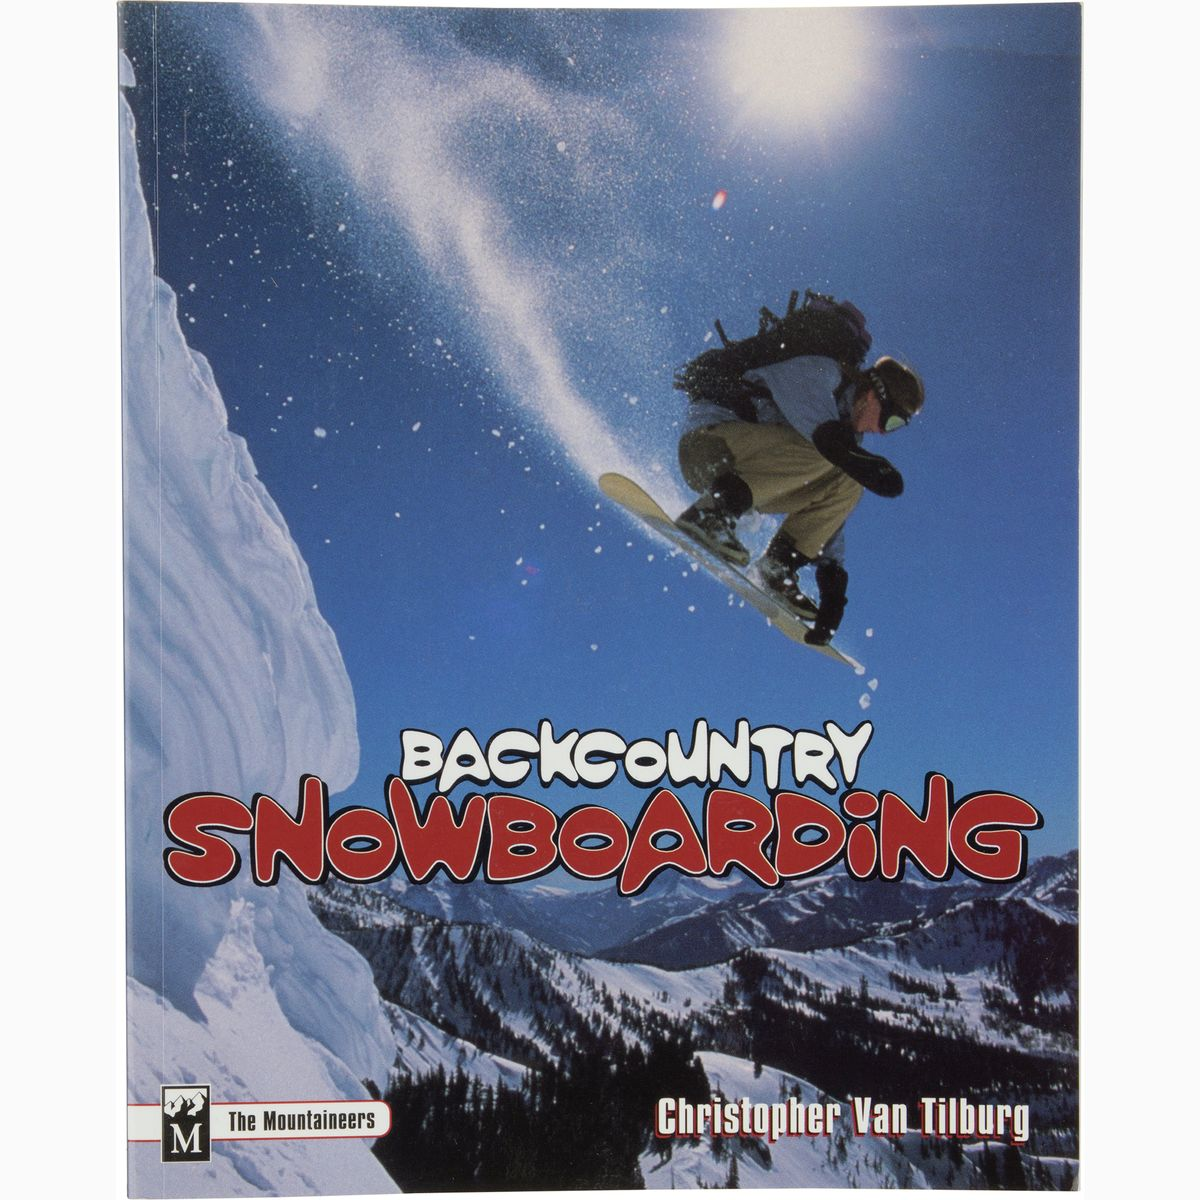 National Geographic Backcountry Snowboarding